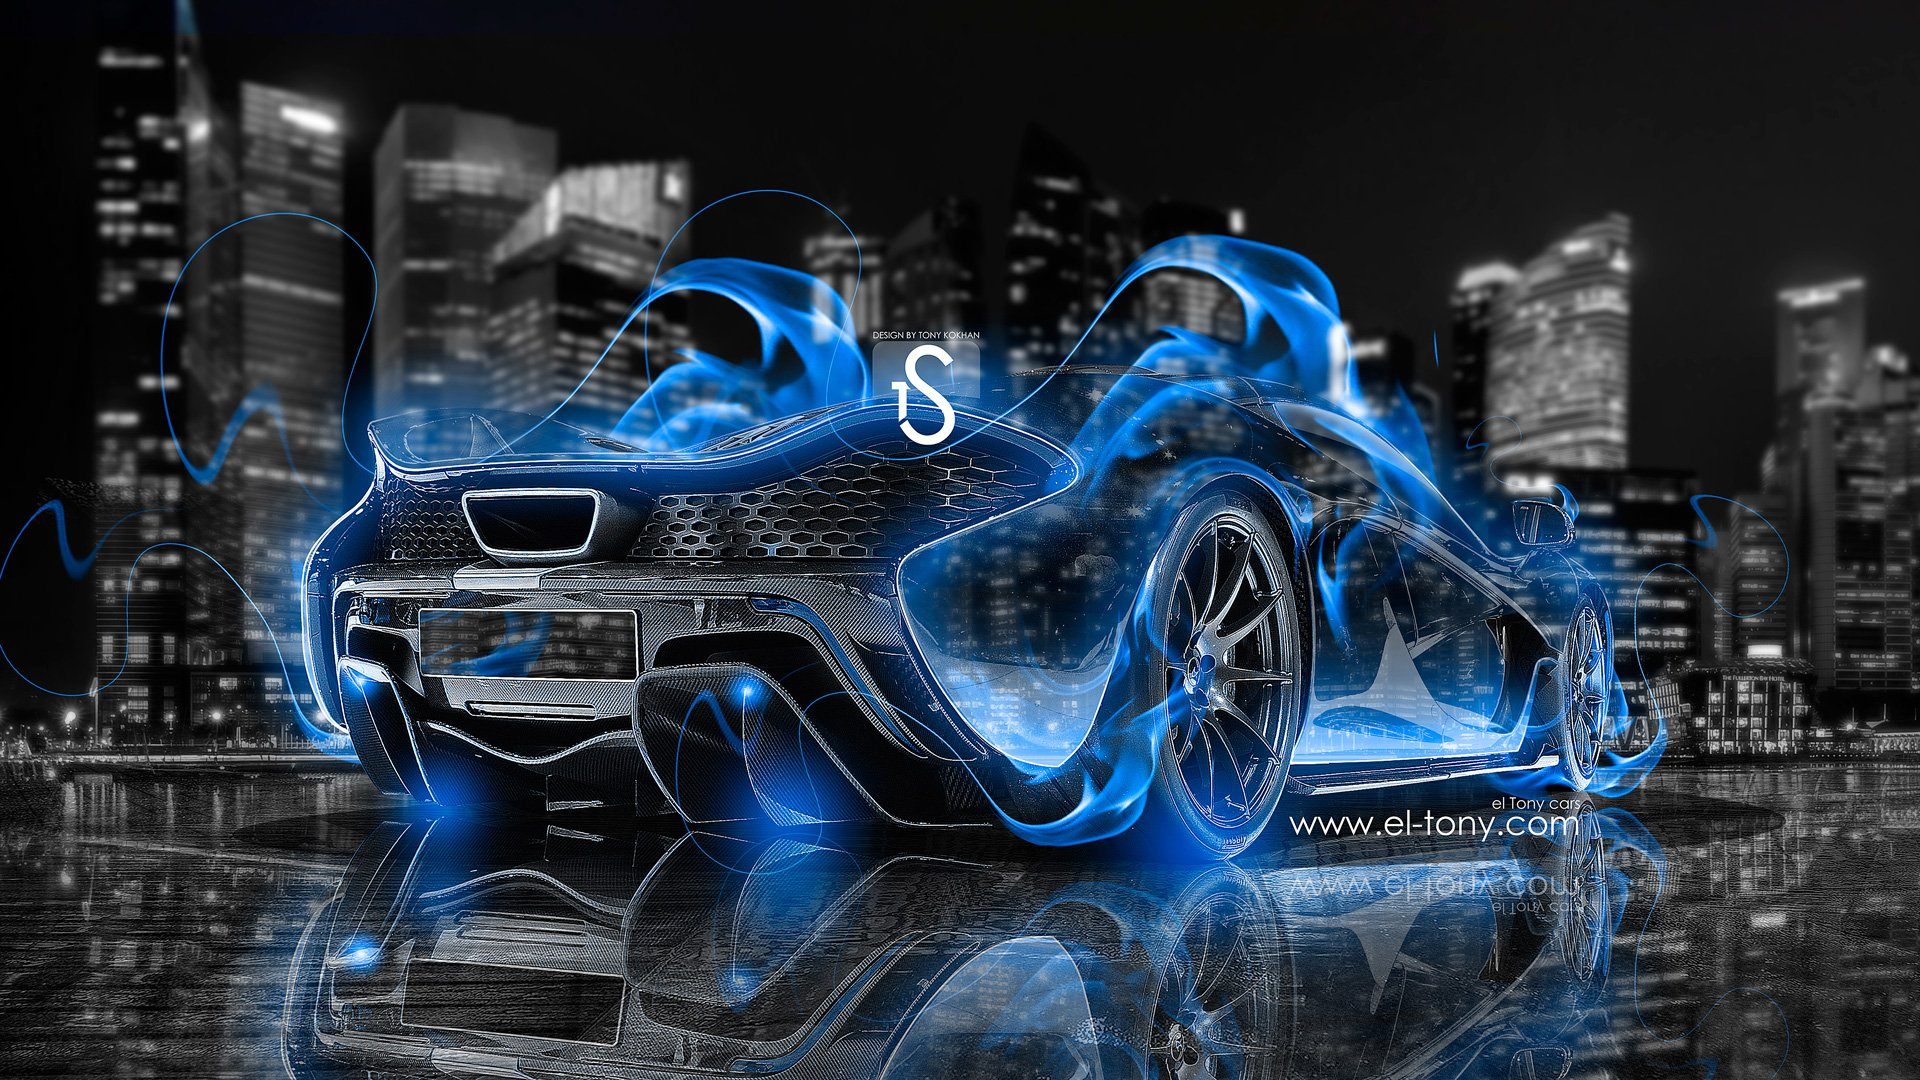 McLaren P1 Blue Fire City Car 2013 Crystal HD Wallpapers by Tony 1920x1080